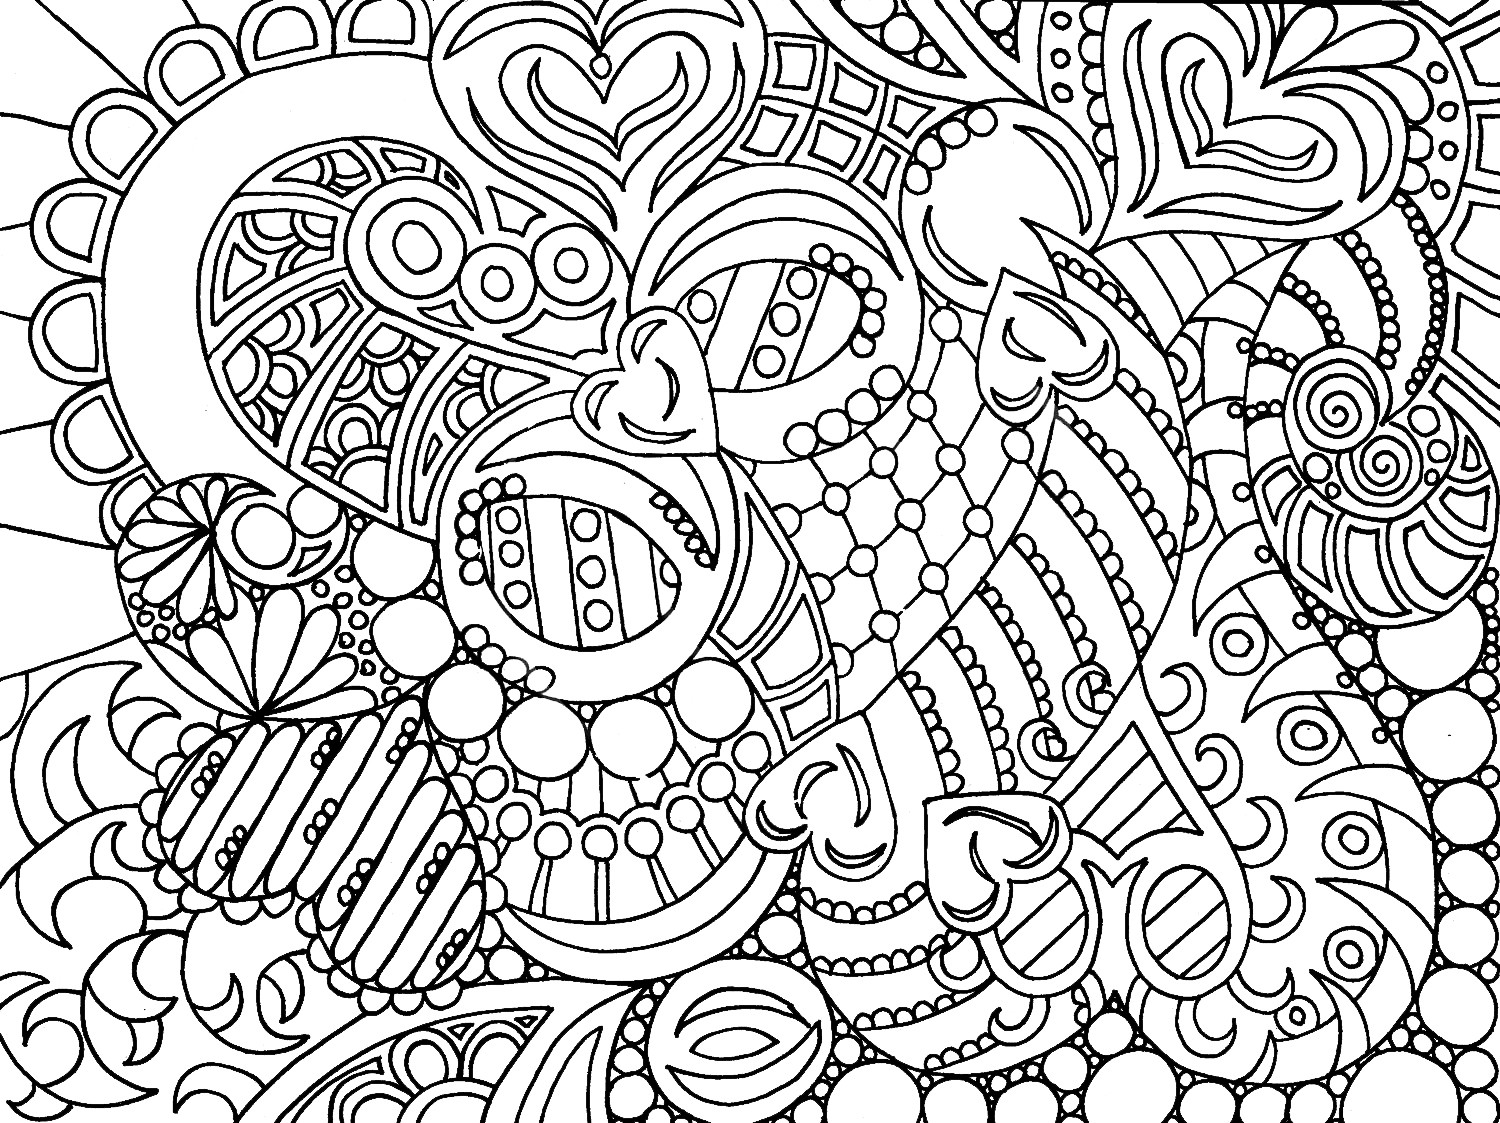 Free Coloring Pages Adult  free coloring pages for adults